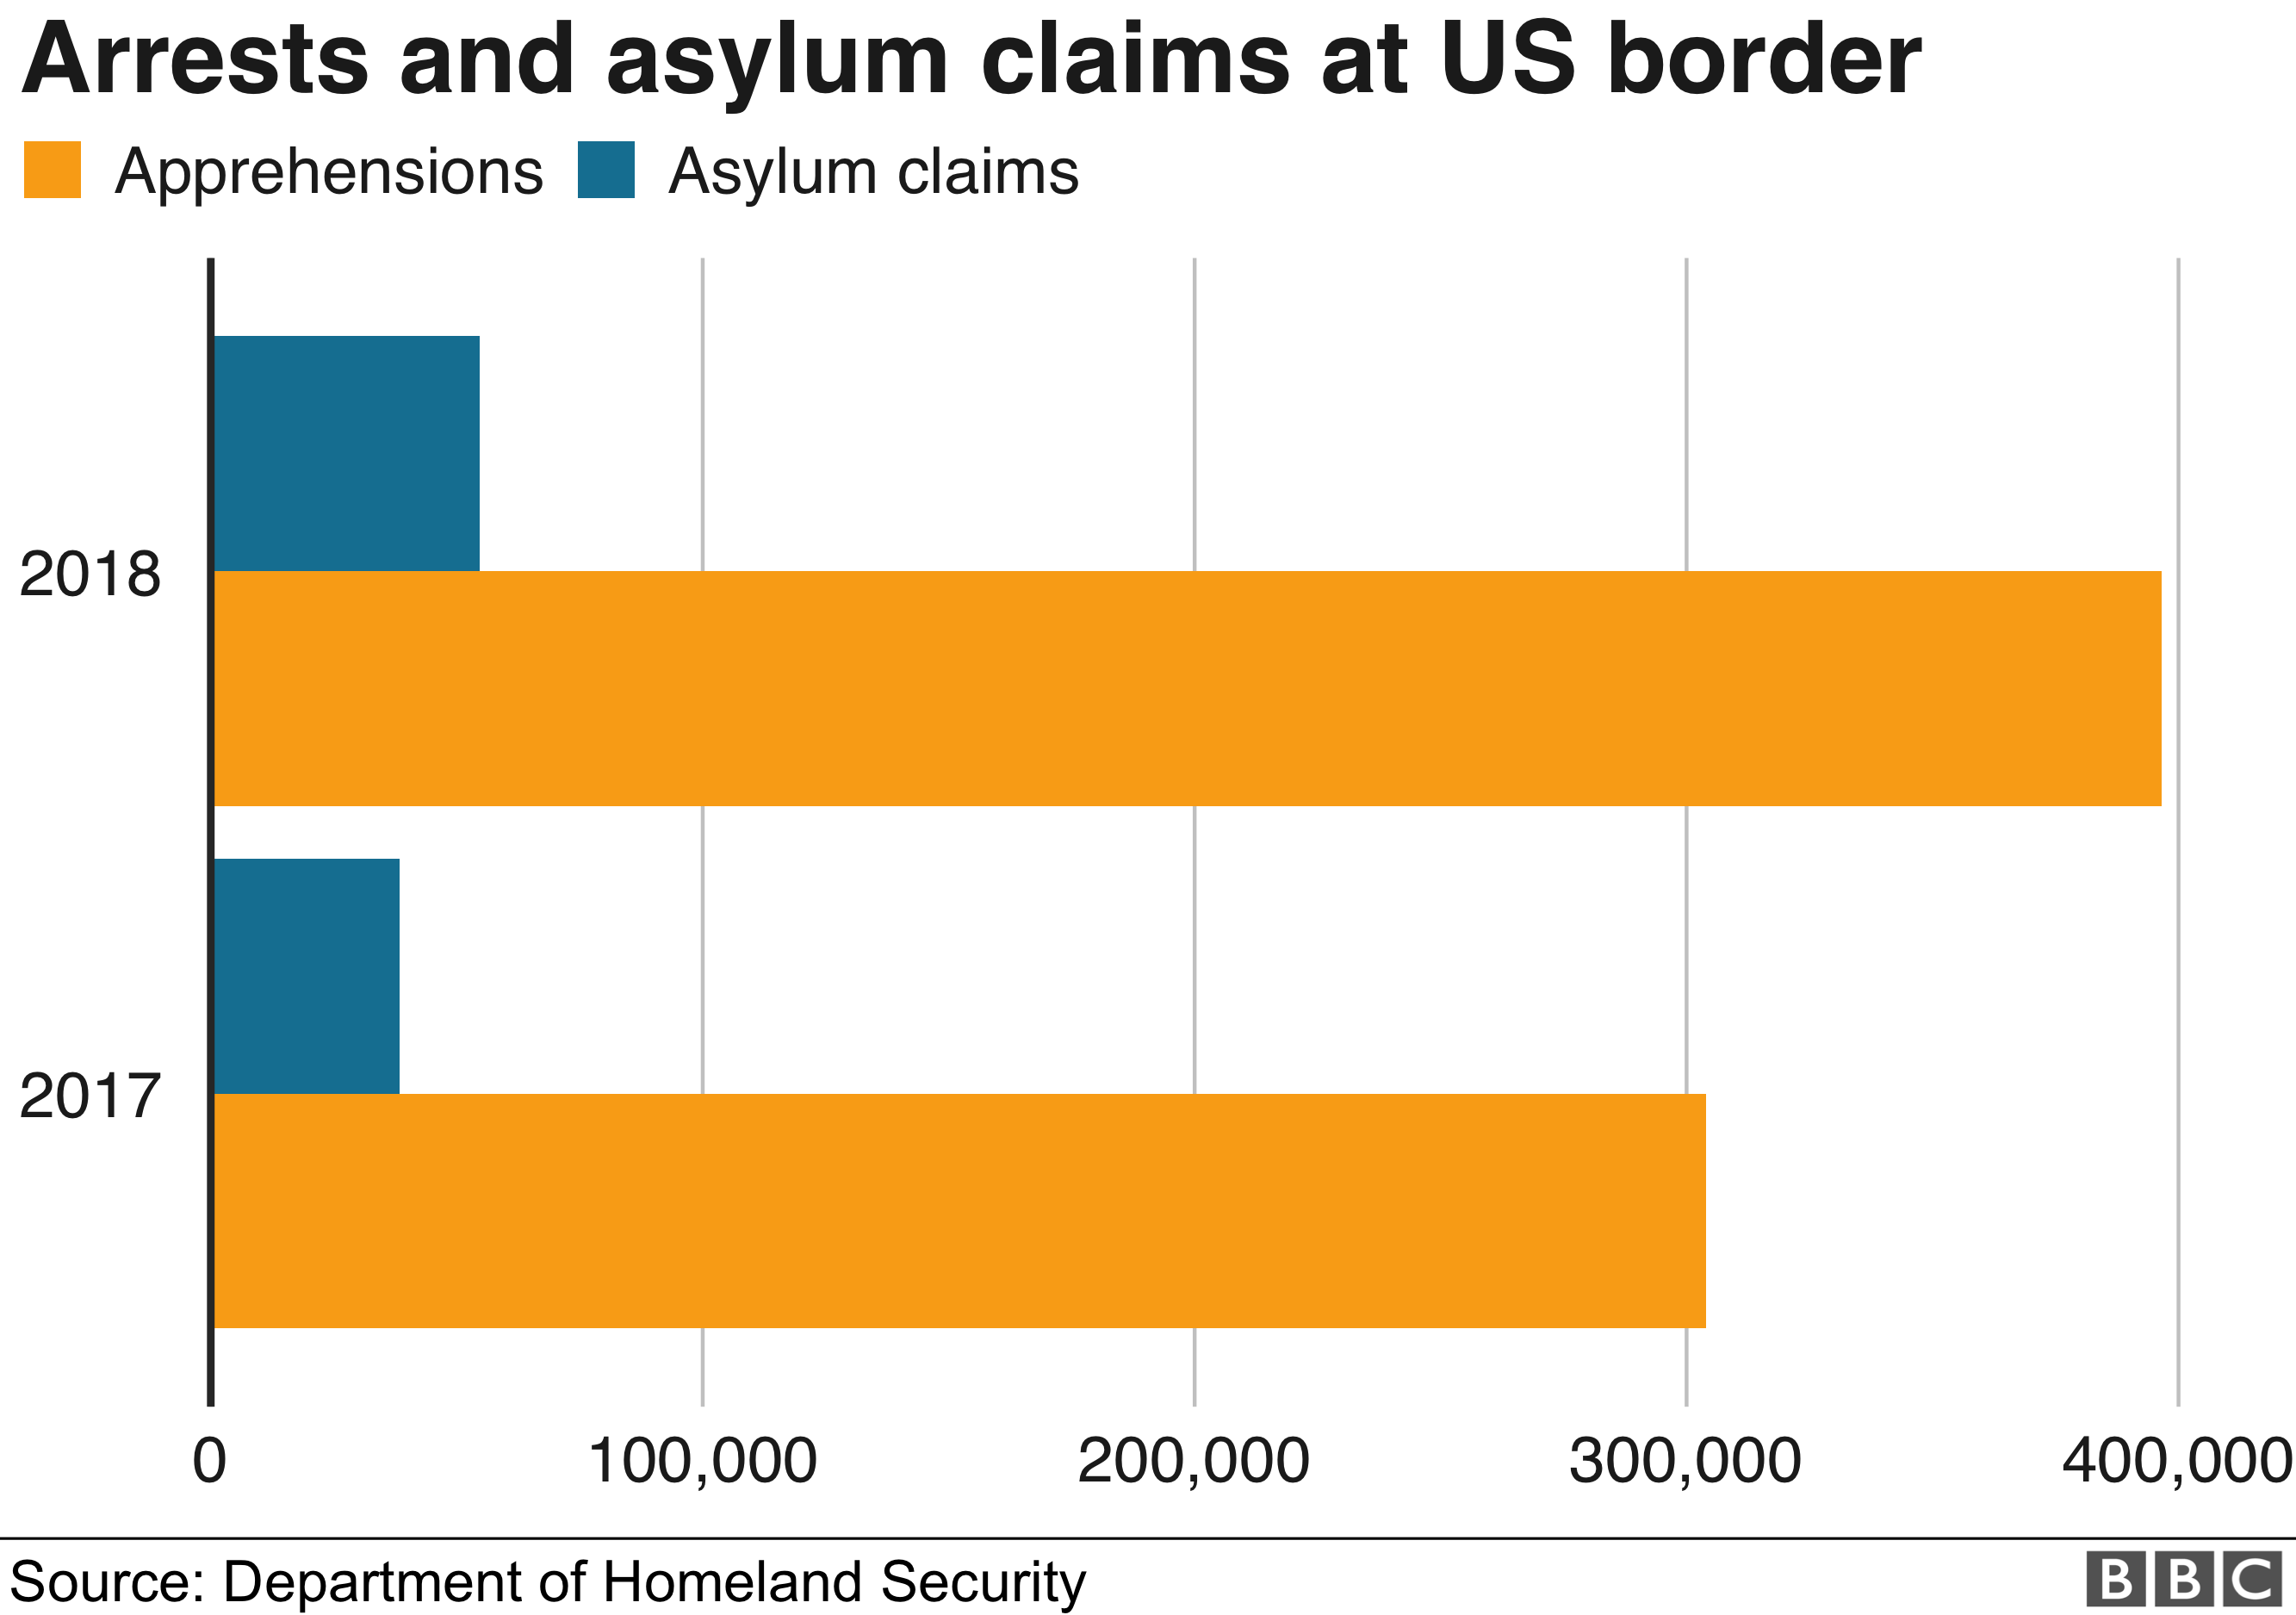 Chart showing US border arrests and asylum claims in 2017 and 2018